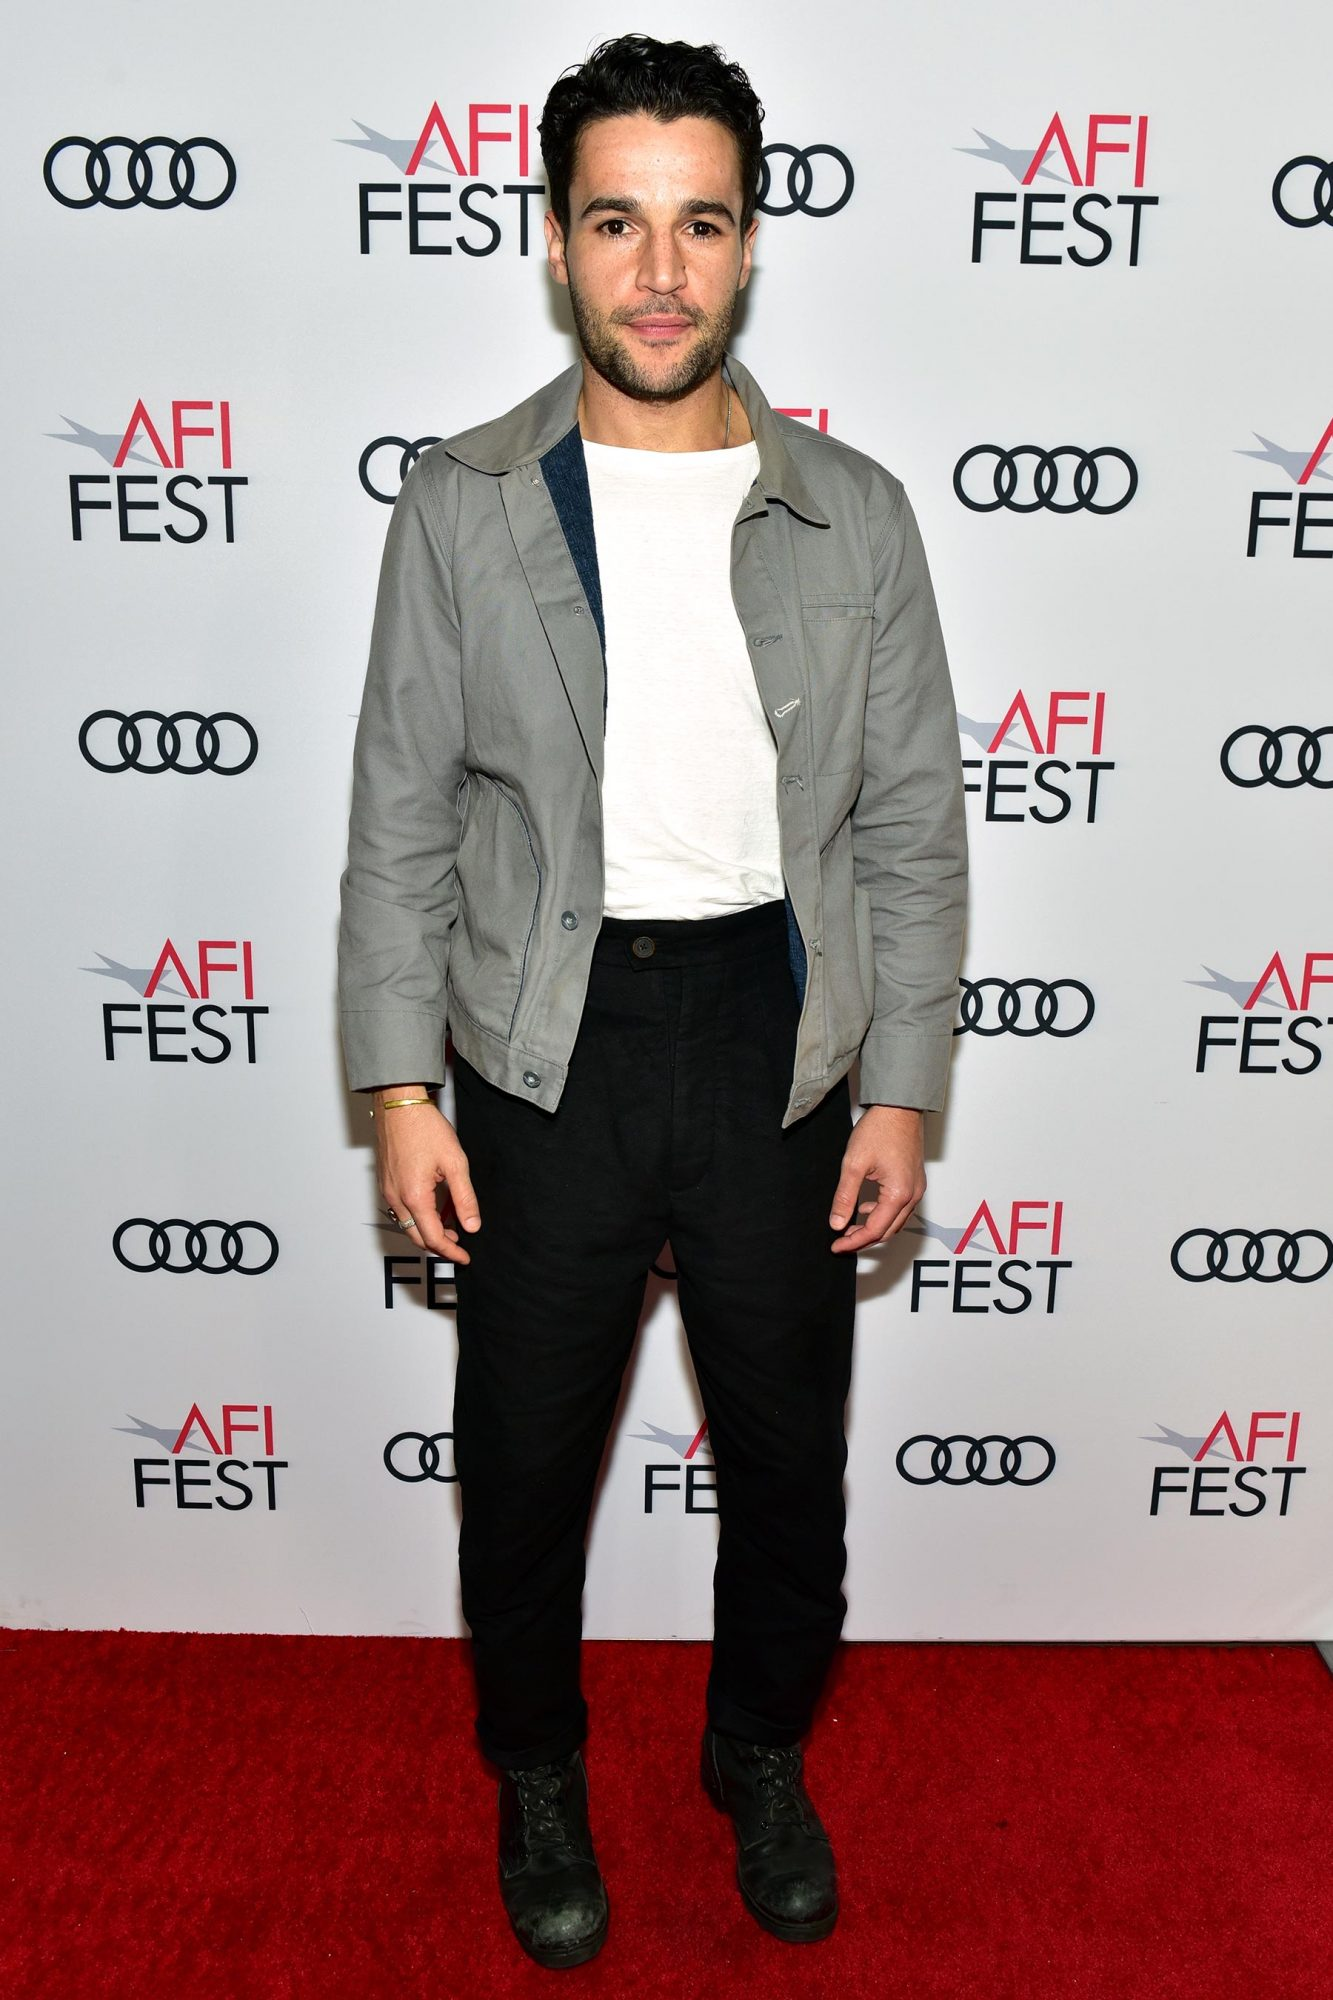 AFI FEST 2018 Presented By Audi - Fest Filmmaker Photo Call